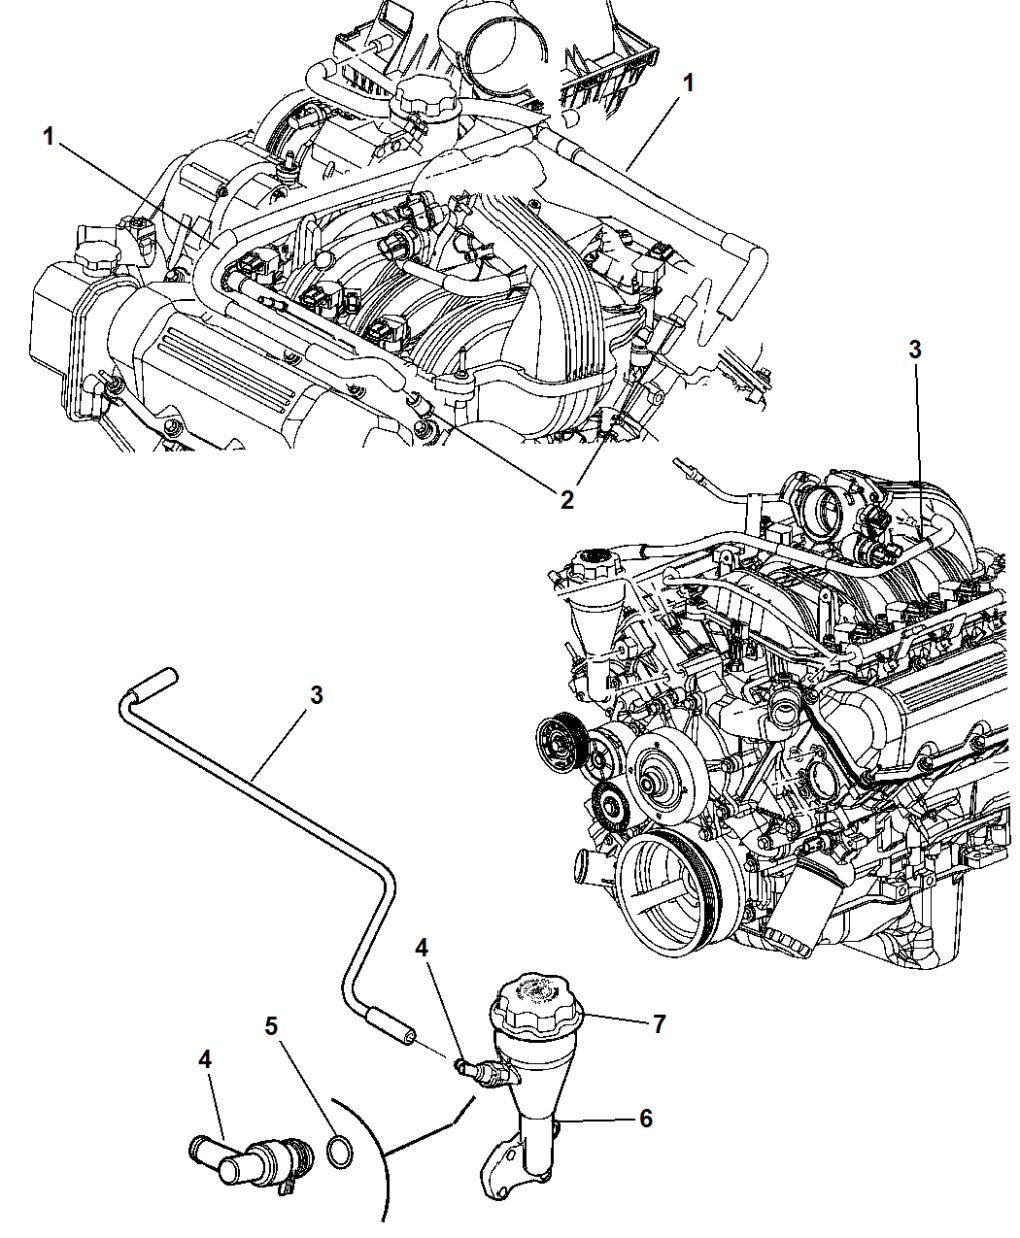 2006 Jeep Liberty Exhaust System Diagram